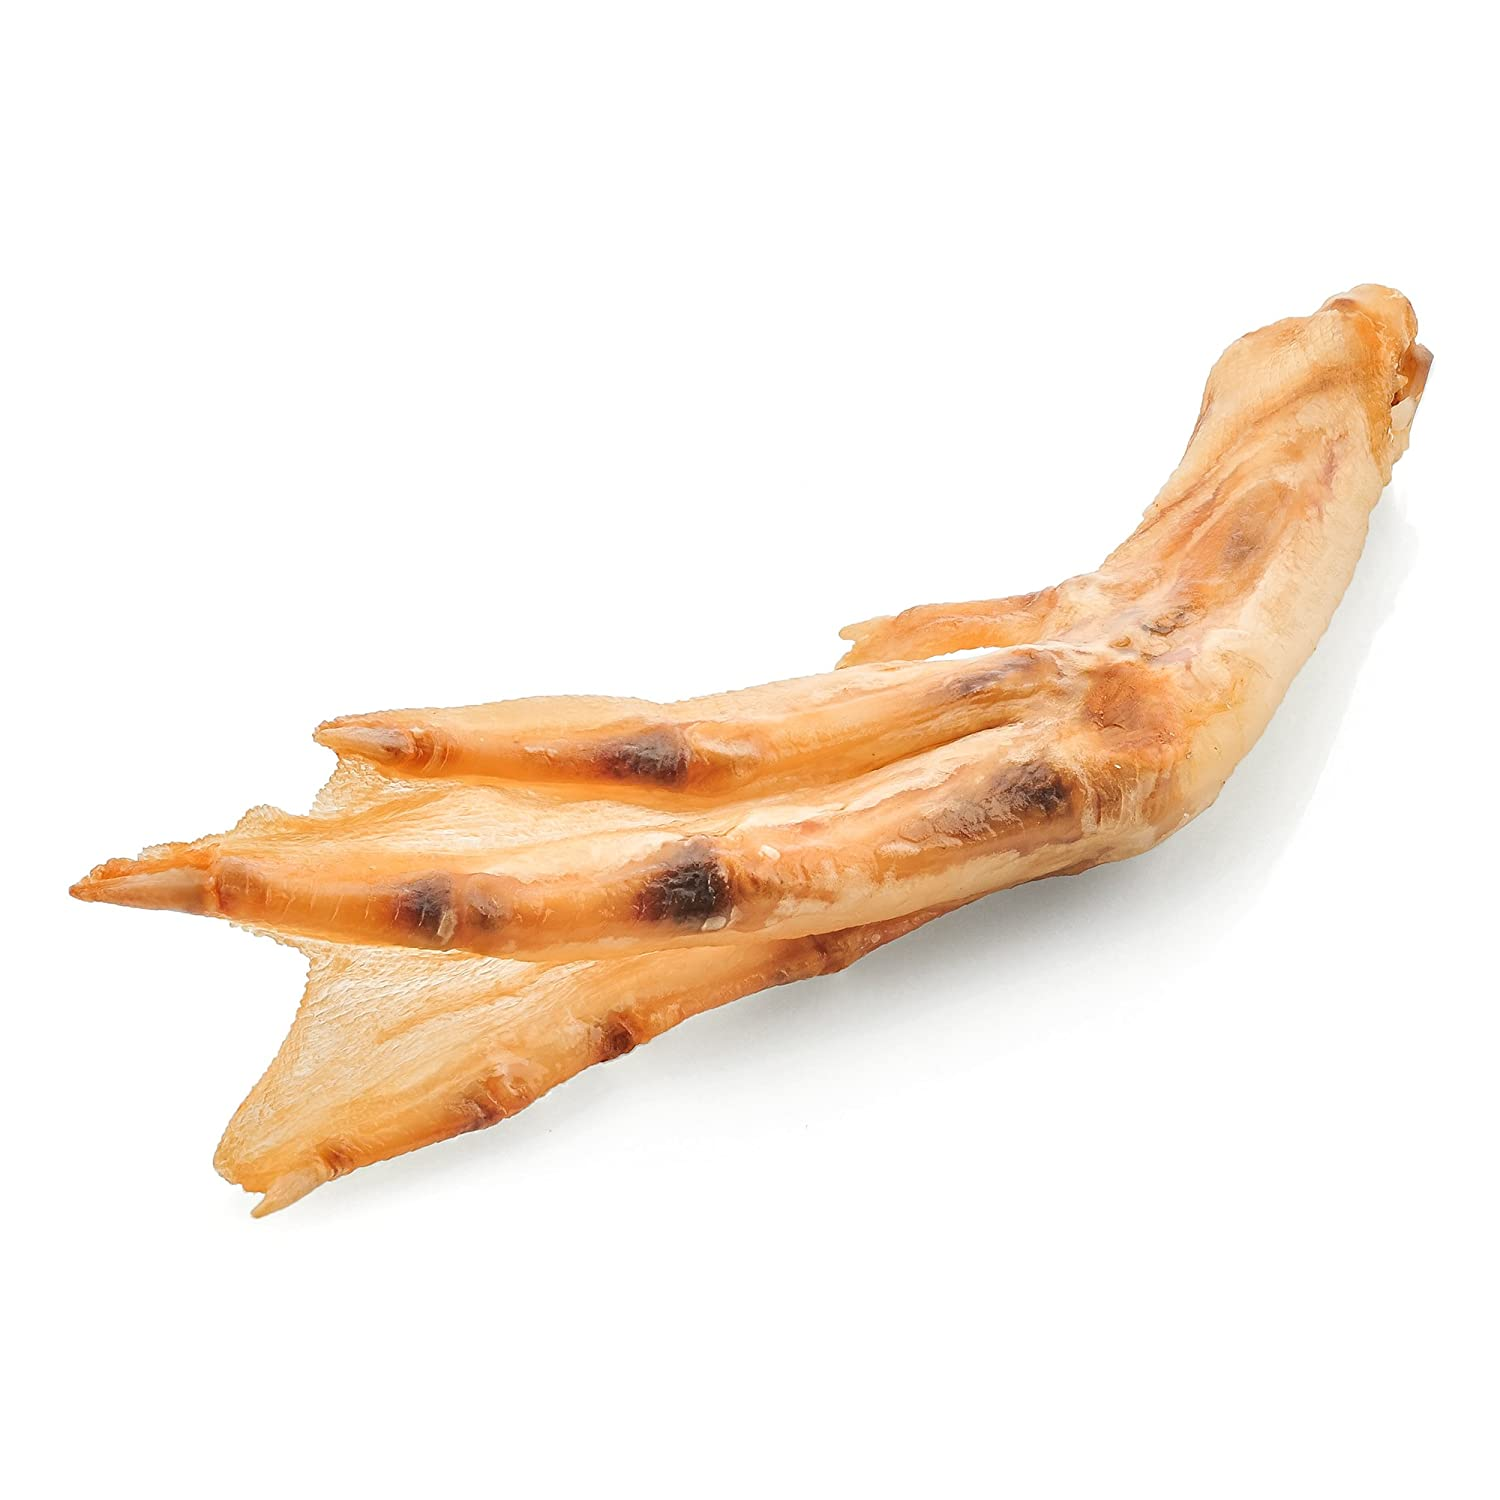 Best Bully Sticks All-Natural Duck Feet Dog Treats (30 Pack) - Single-Ingredient & Fully Digestible - Supports Healthy Hips and Joints